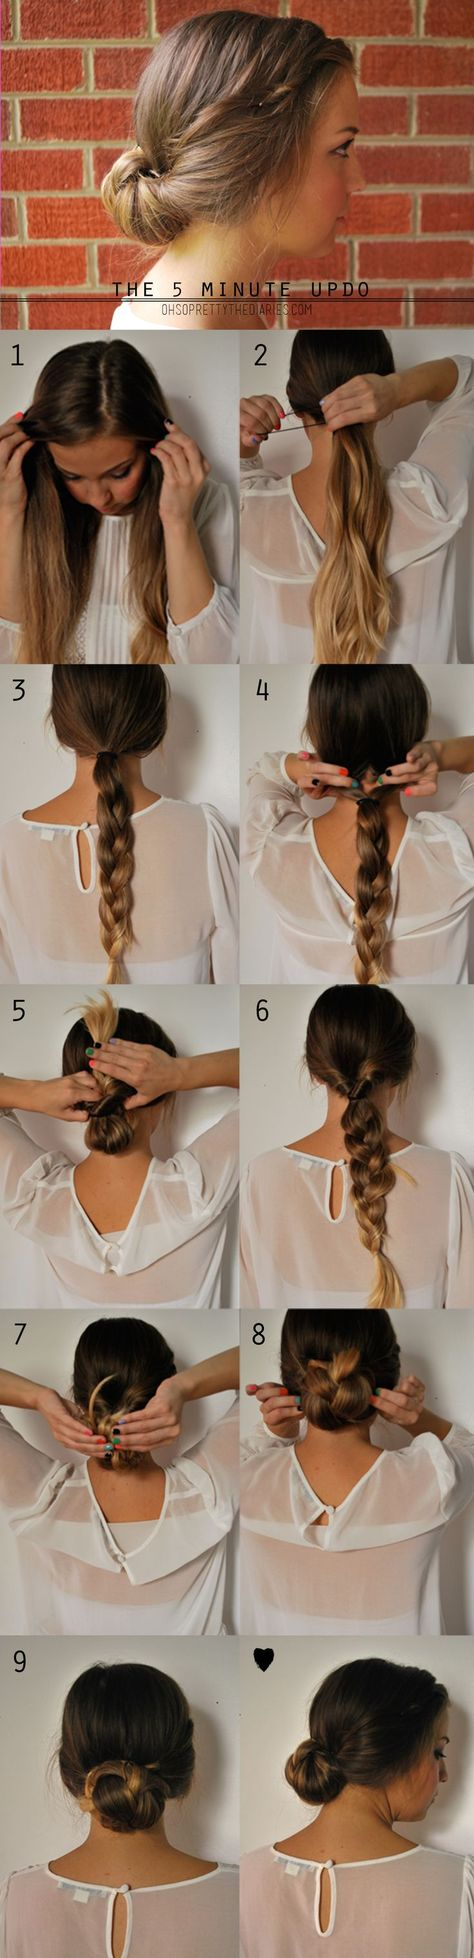 5 minute up do.